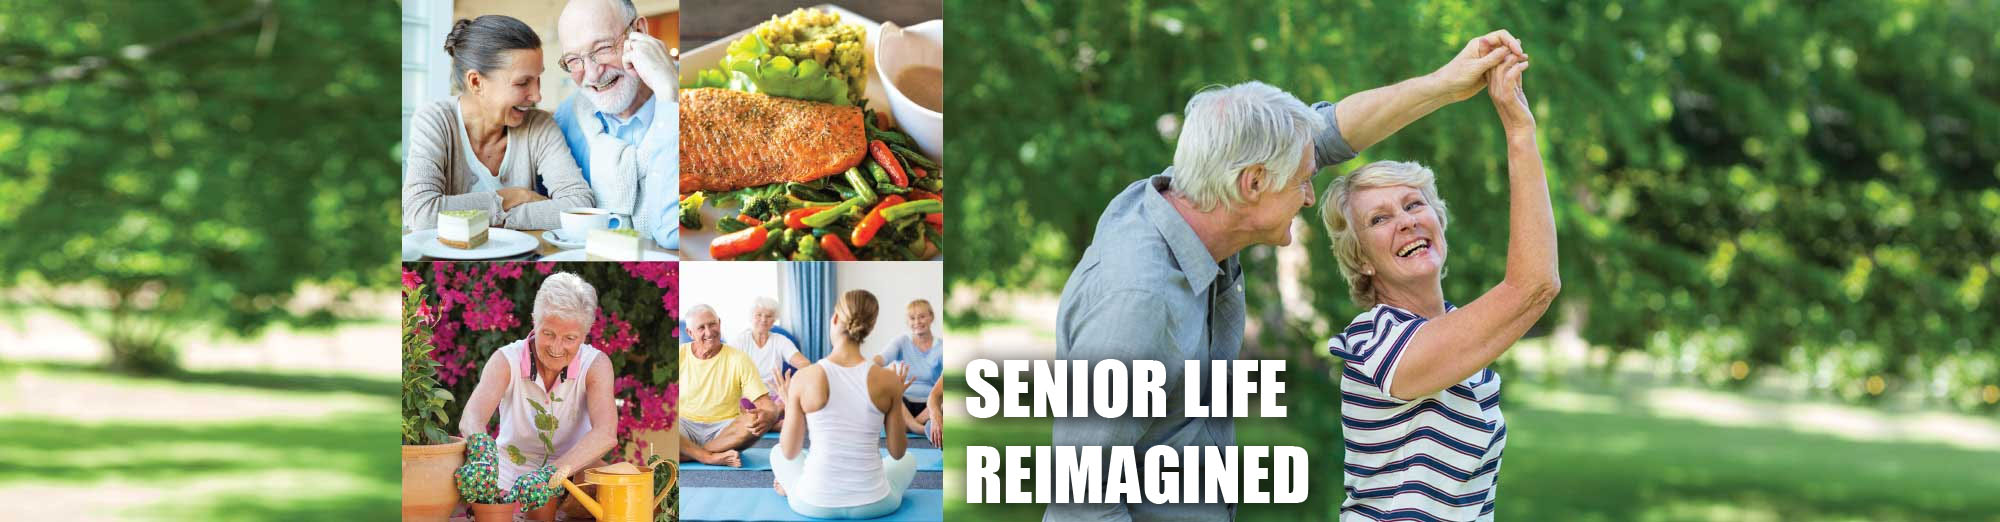 Assistd Living and Memory Care Facility Araviall Senior Living Options